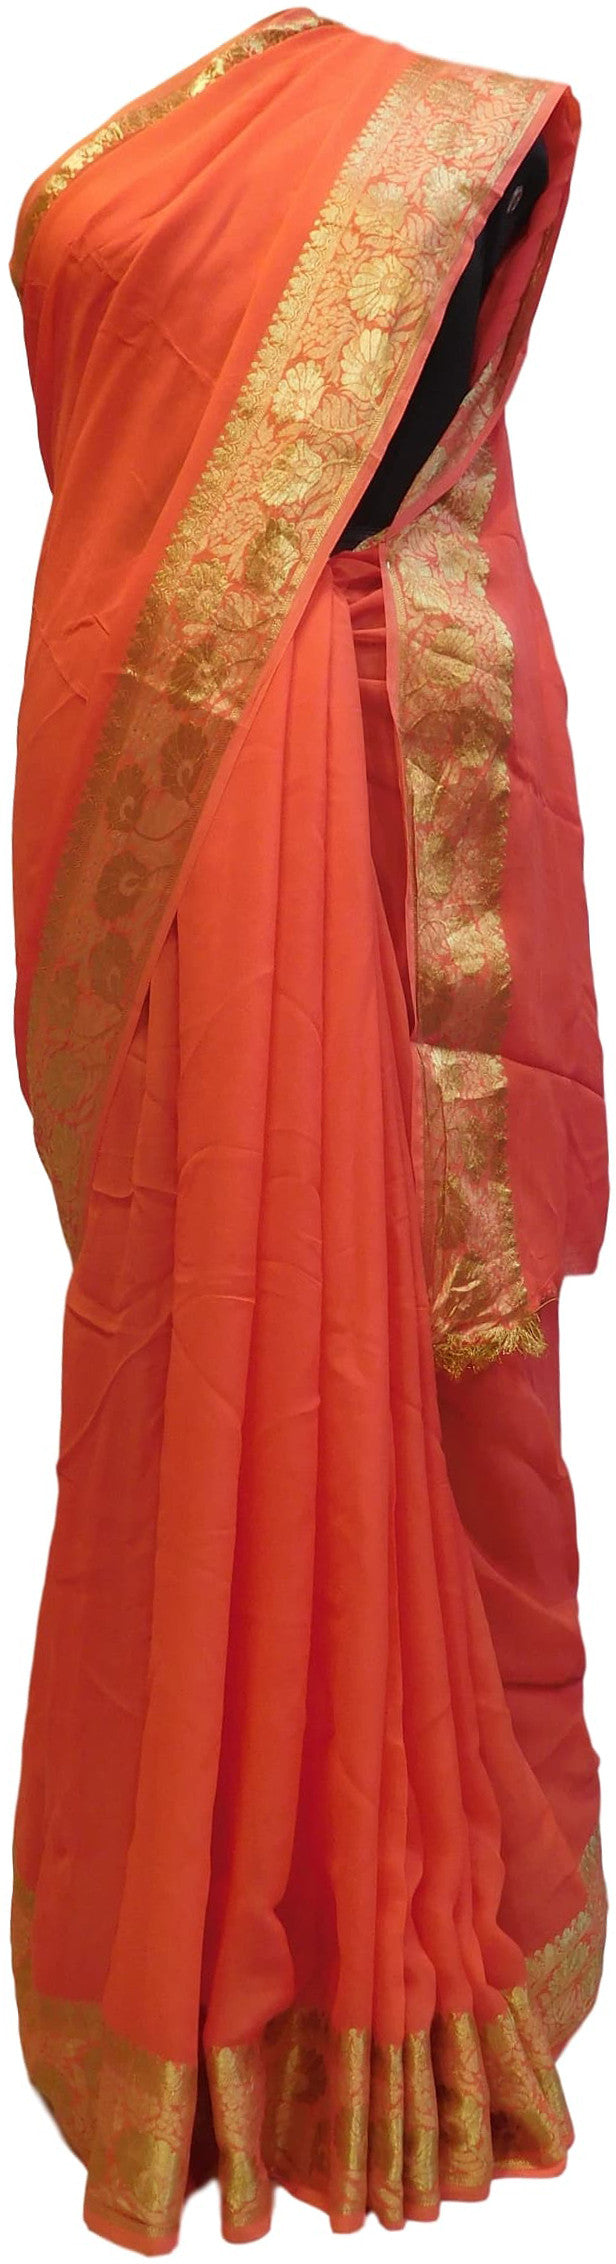 Gajari Designer Georgette (Viscos) Self Weaved Zari Border Work Saree Sari